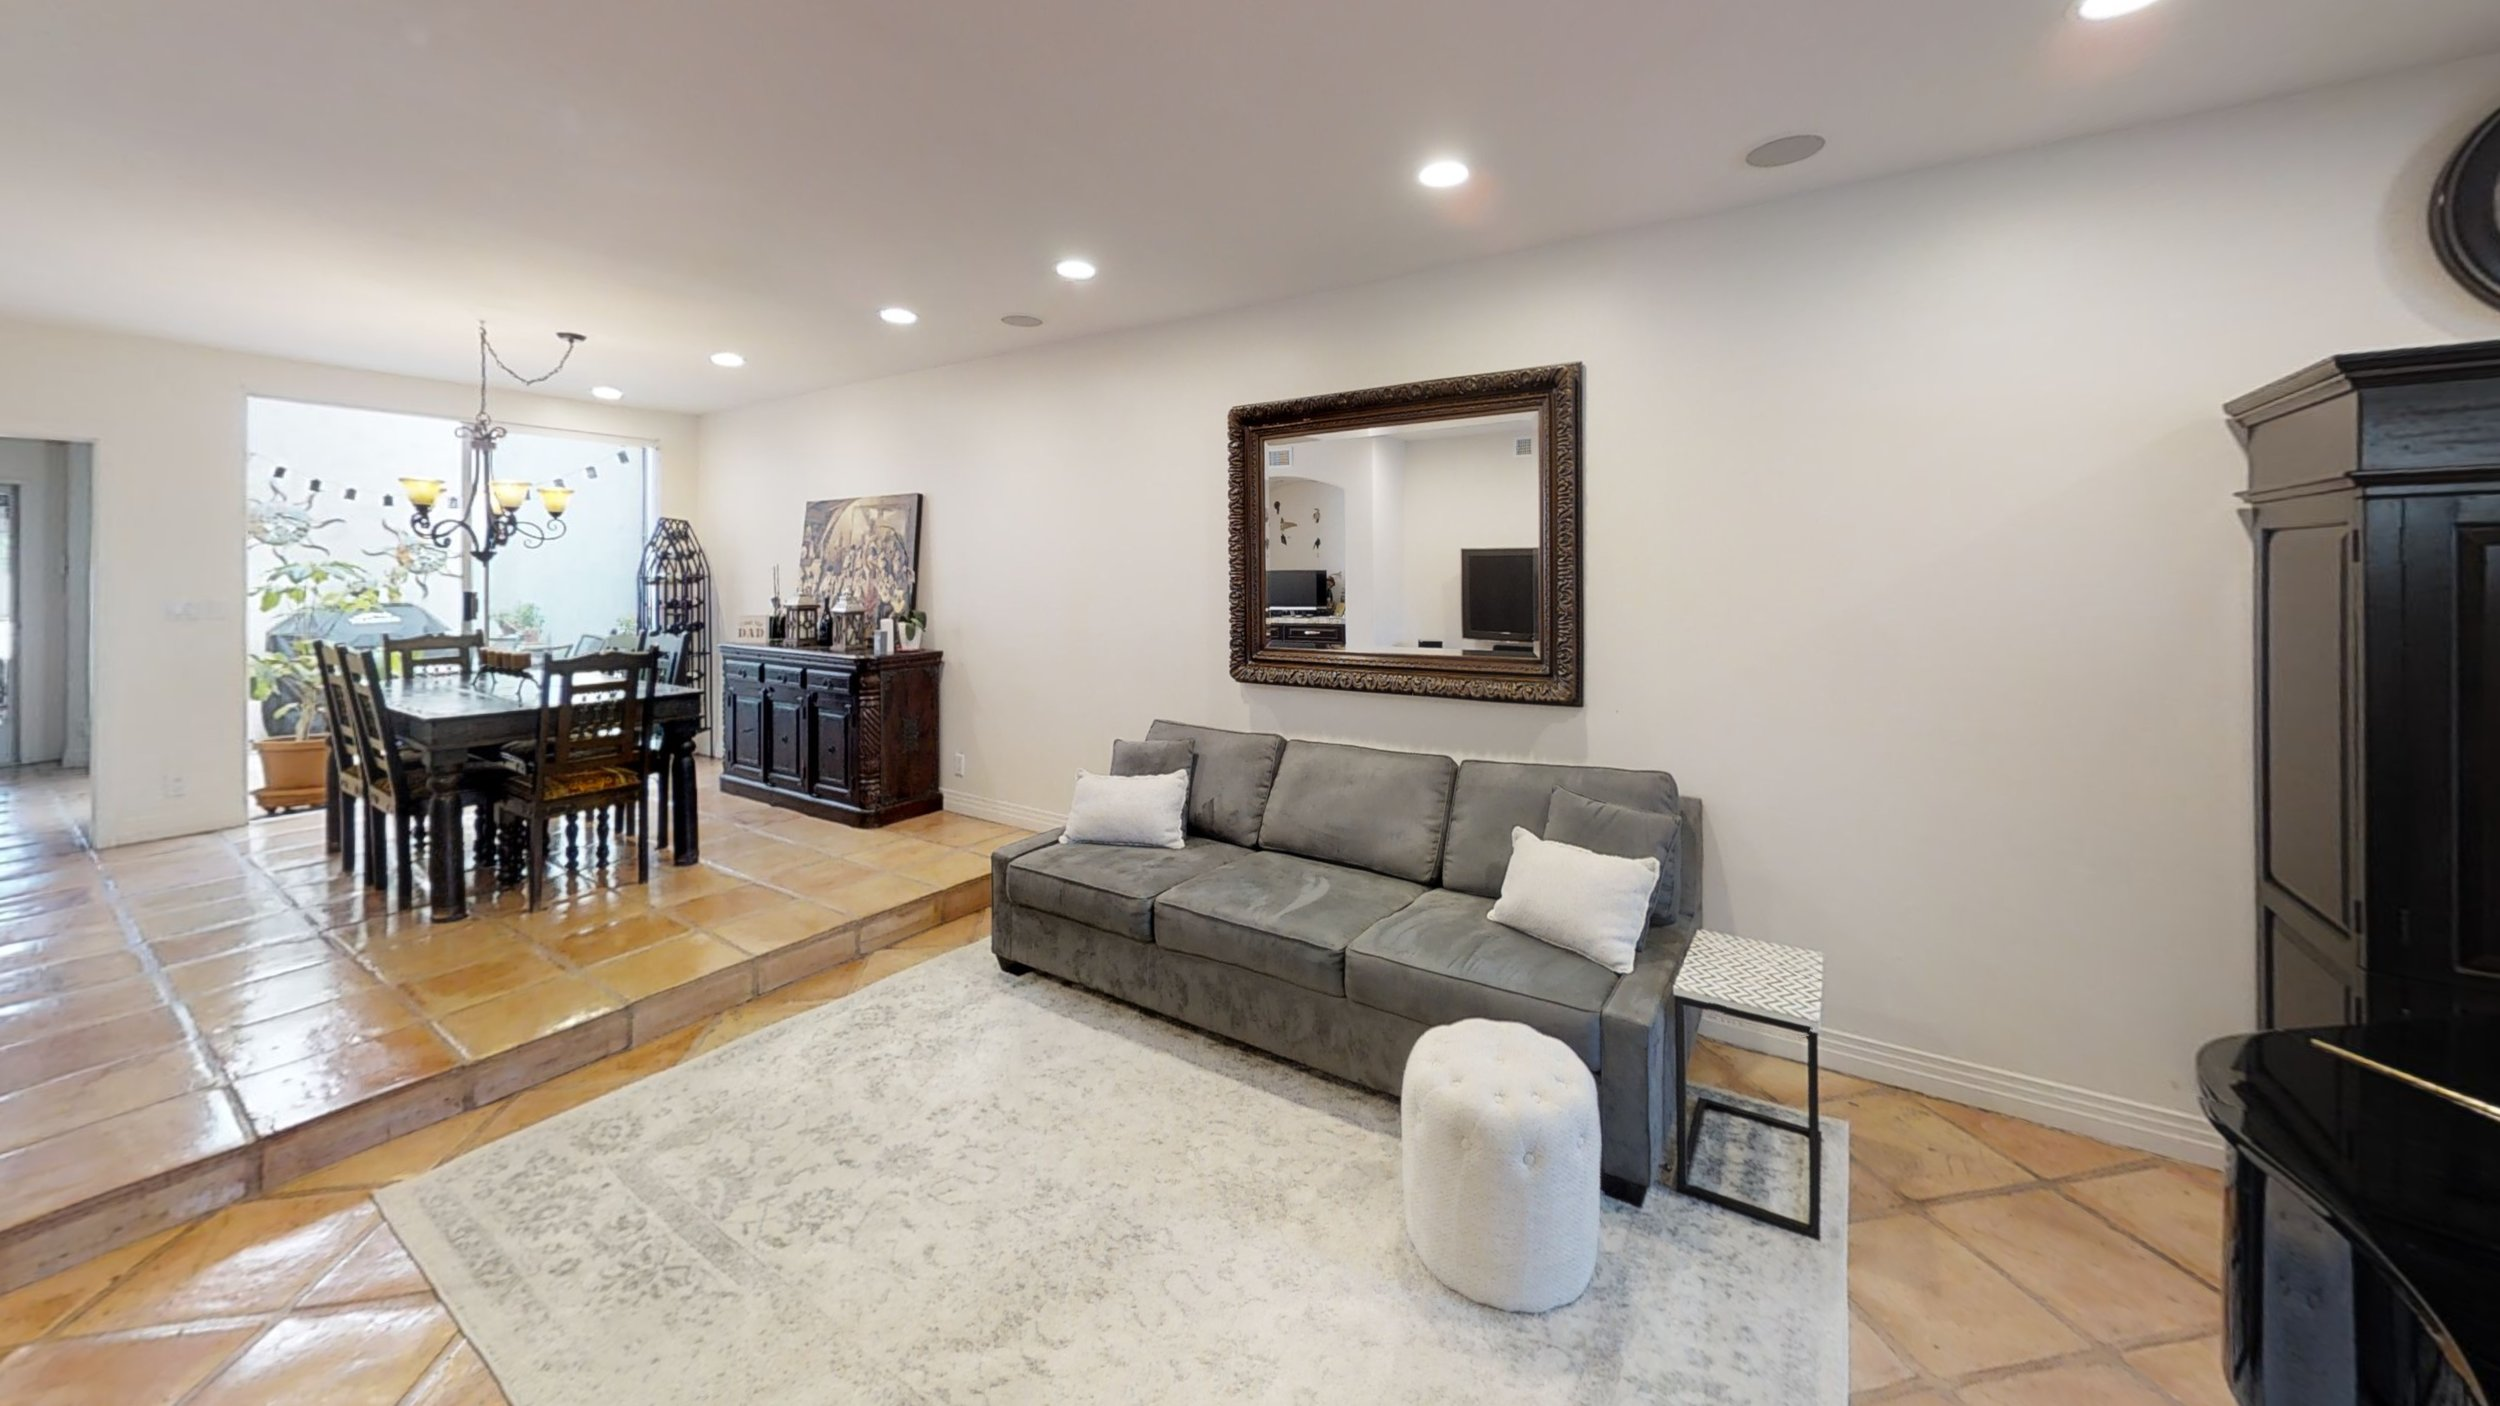 2137-Colby-Ave-Living-Room.jpg